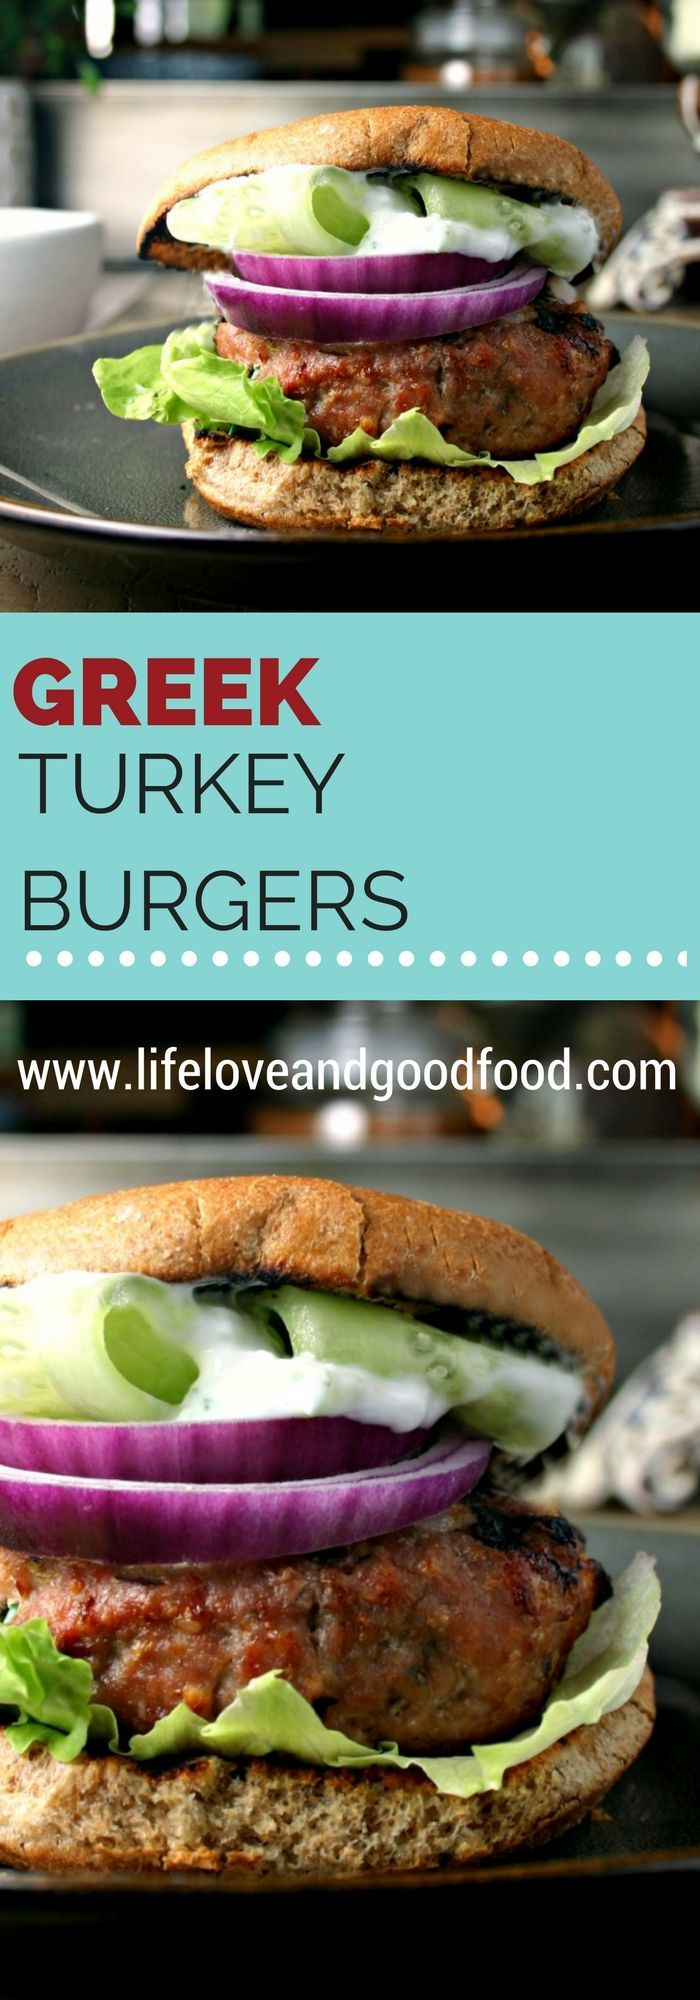 Greek Turkey Burgers | #healthy: http://lifeloveandgoodfood.com/greek-turkey-burgers